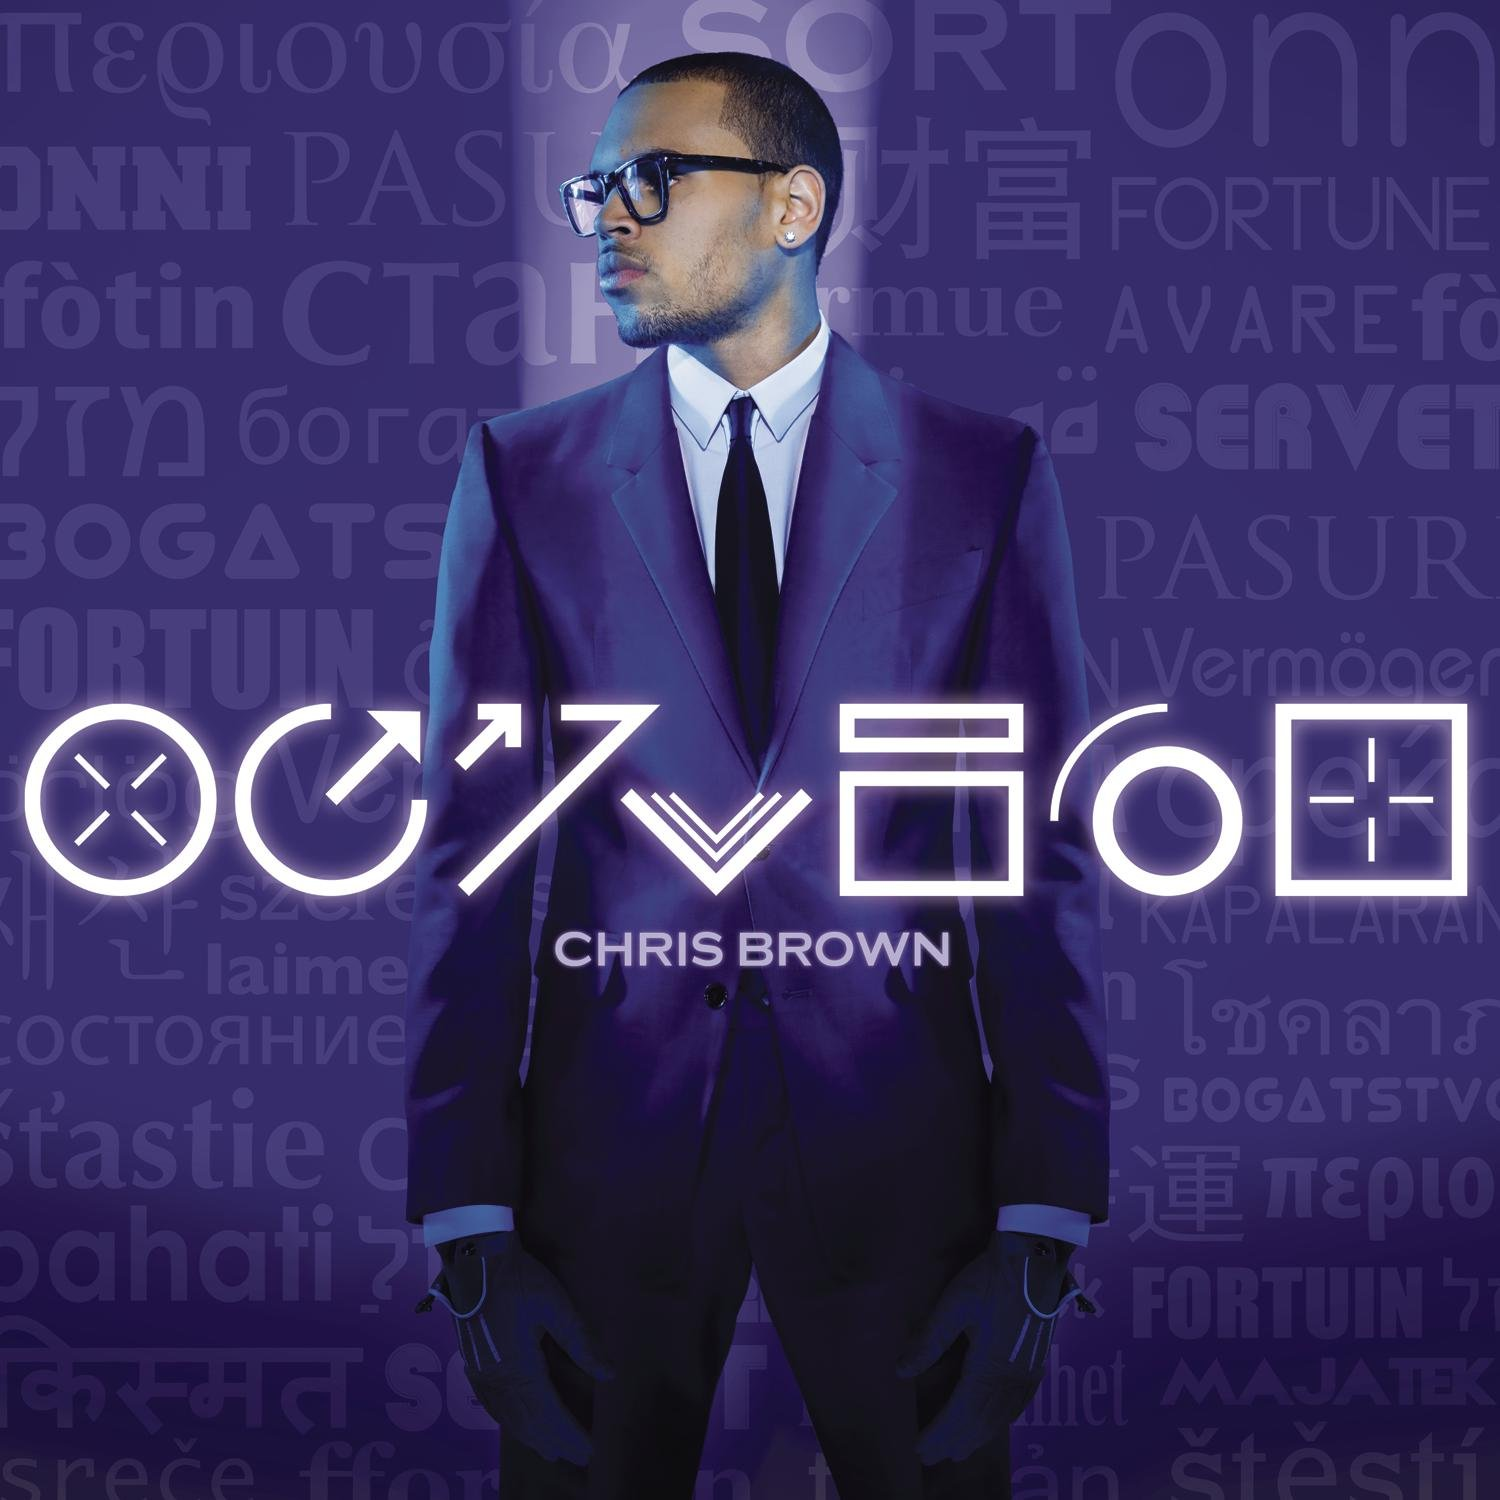 turn up the music mp3 free download chris brown